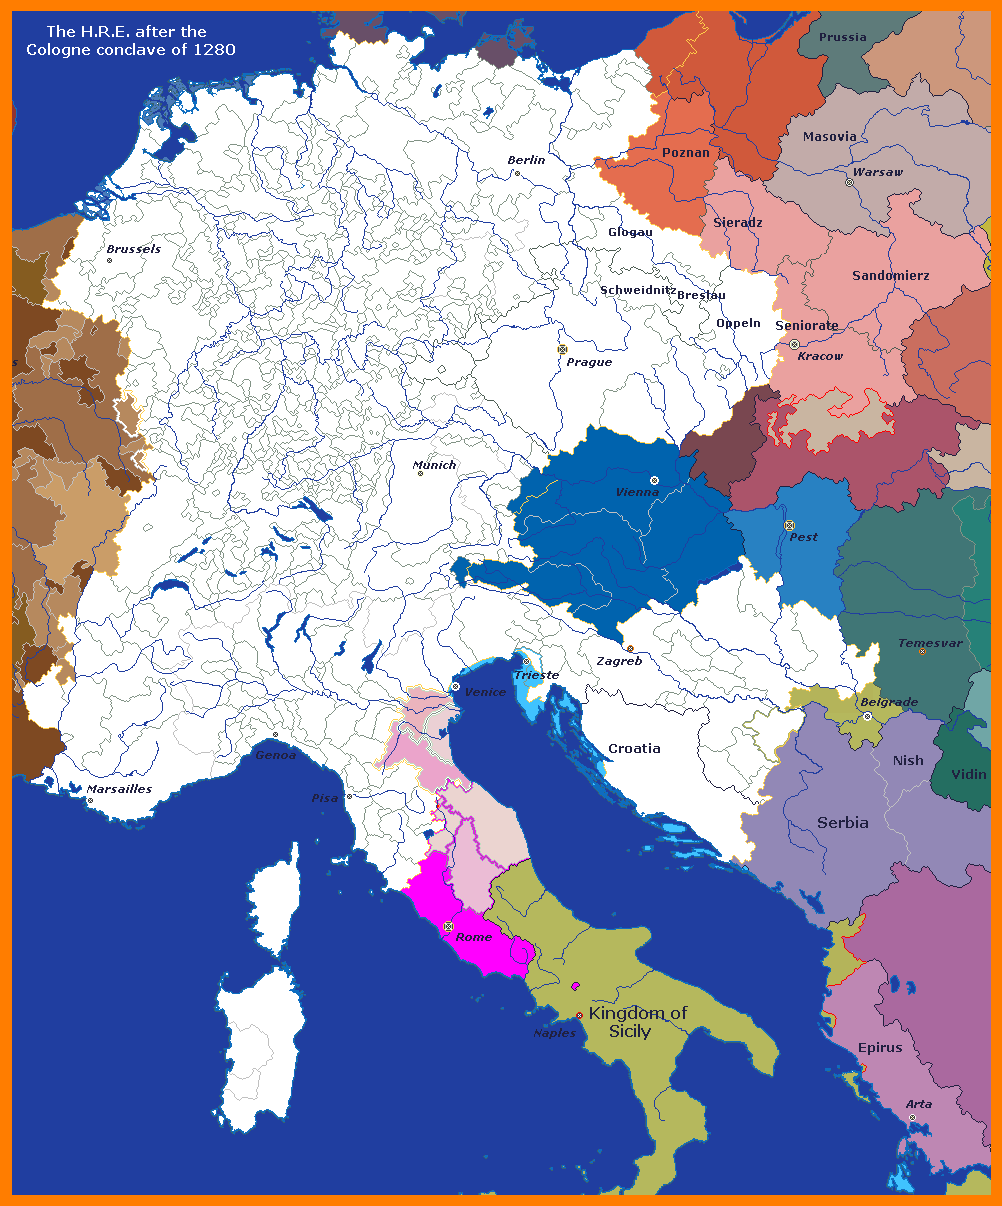 1280 Holy Roman Empire after the Cologne conclave.png